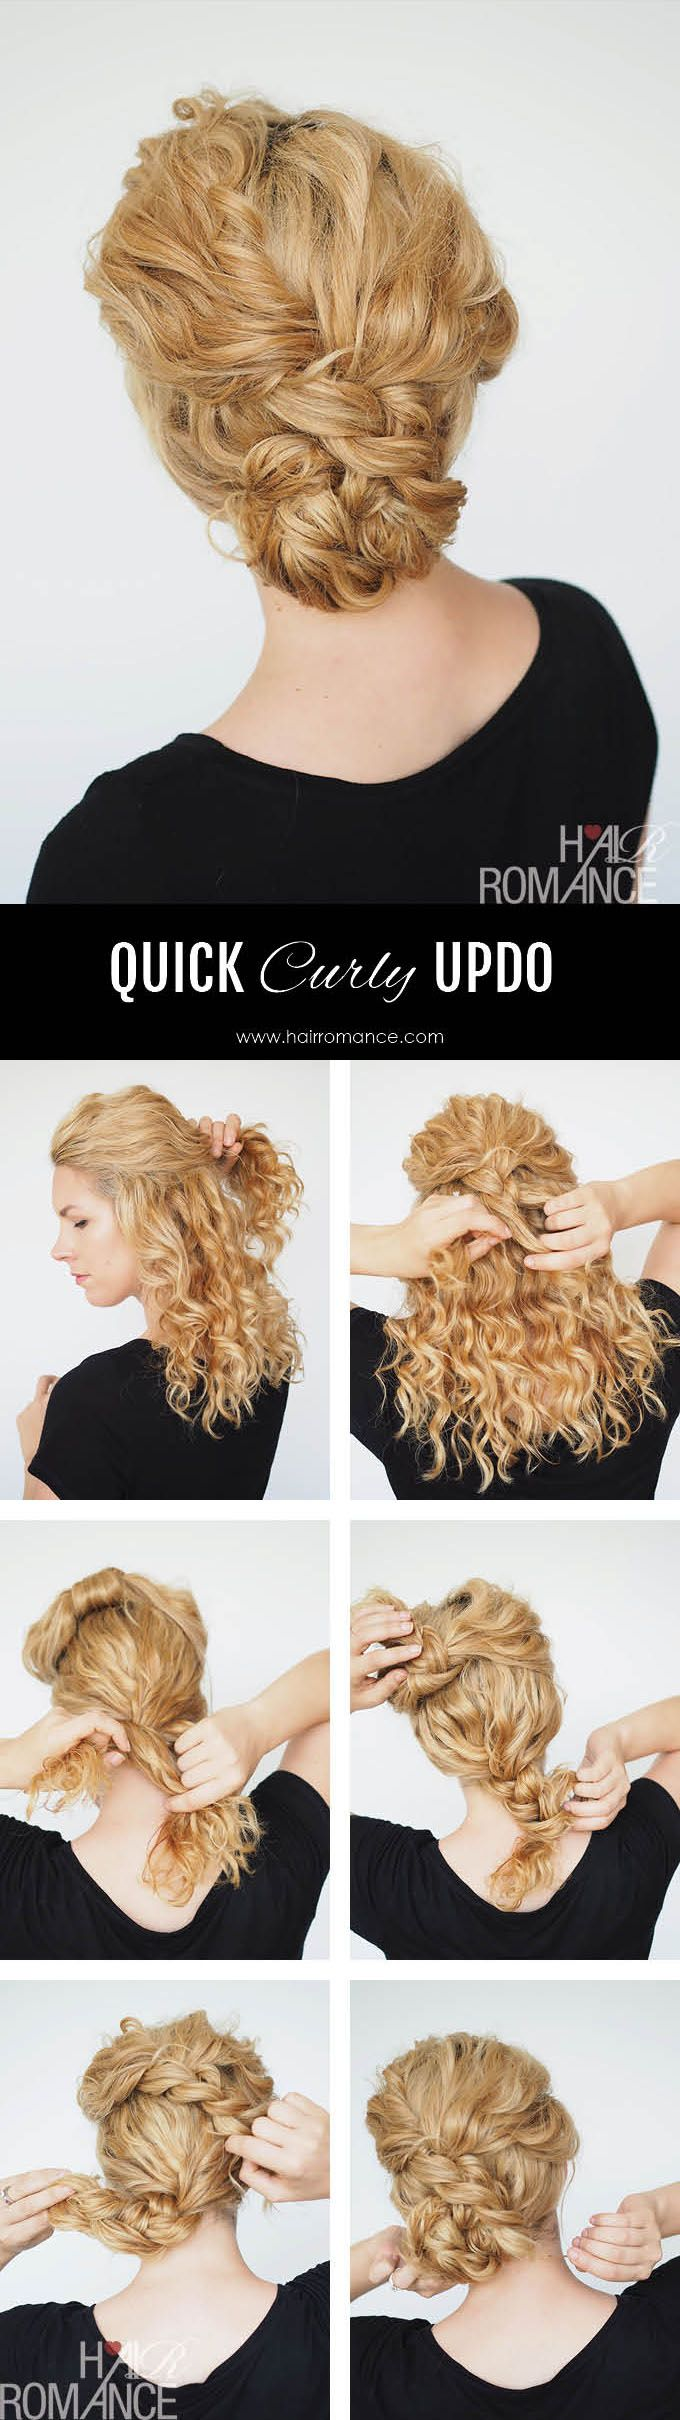 Second Day Curly Hairstyles 2 Min Updo For Curly Hair Hair Pinterest Curly Updo Tutorial